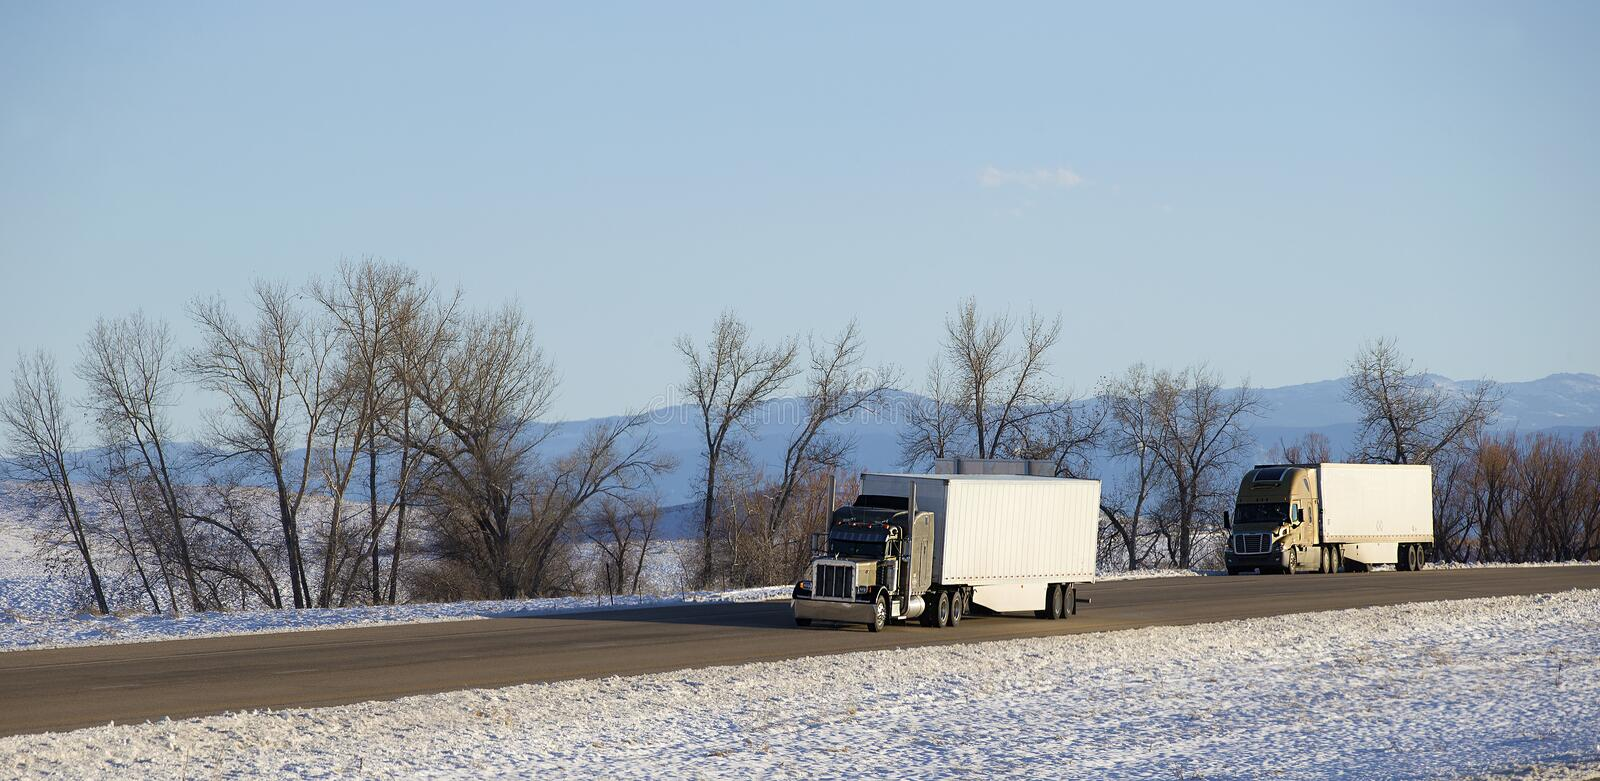 Semi truck with trailer royalty free stock images